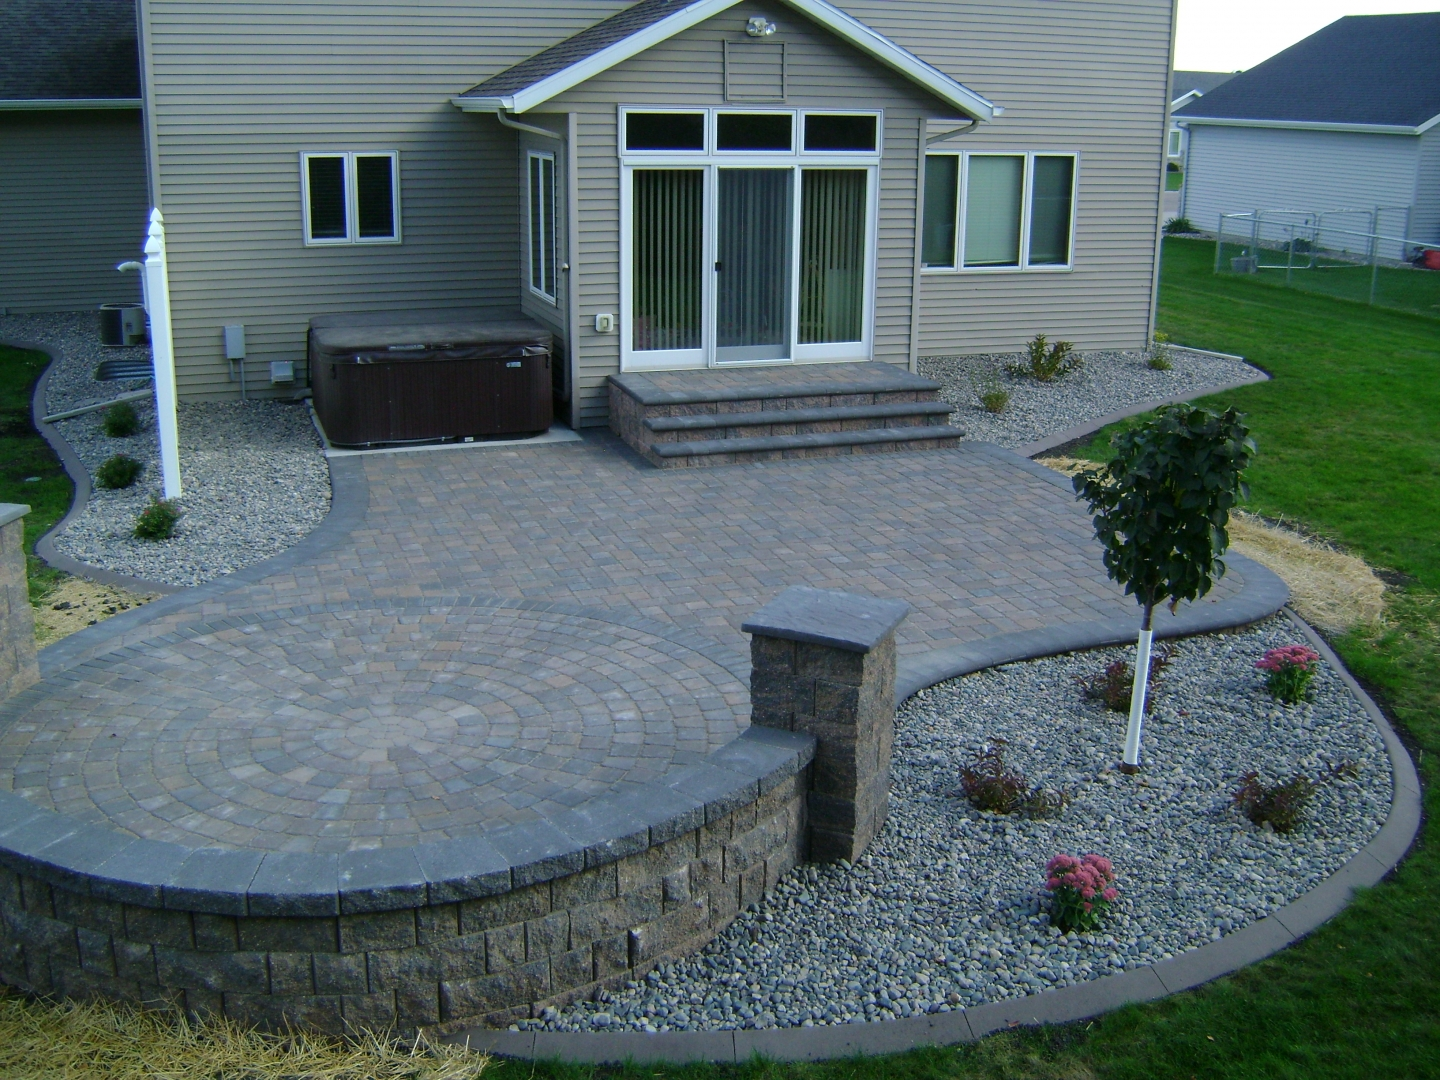 Earth Tone Paver Patio with Sitting Wall and Rock Fill ... on Patio Block Wall Ideas id=73505